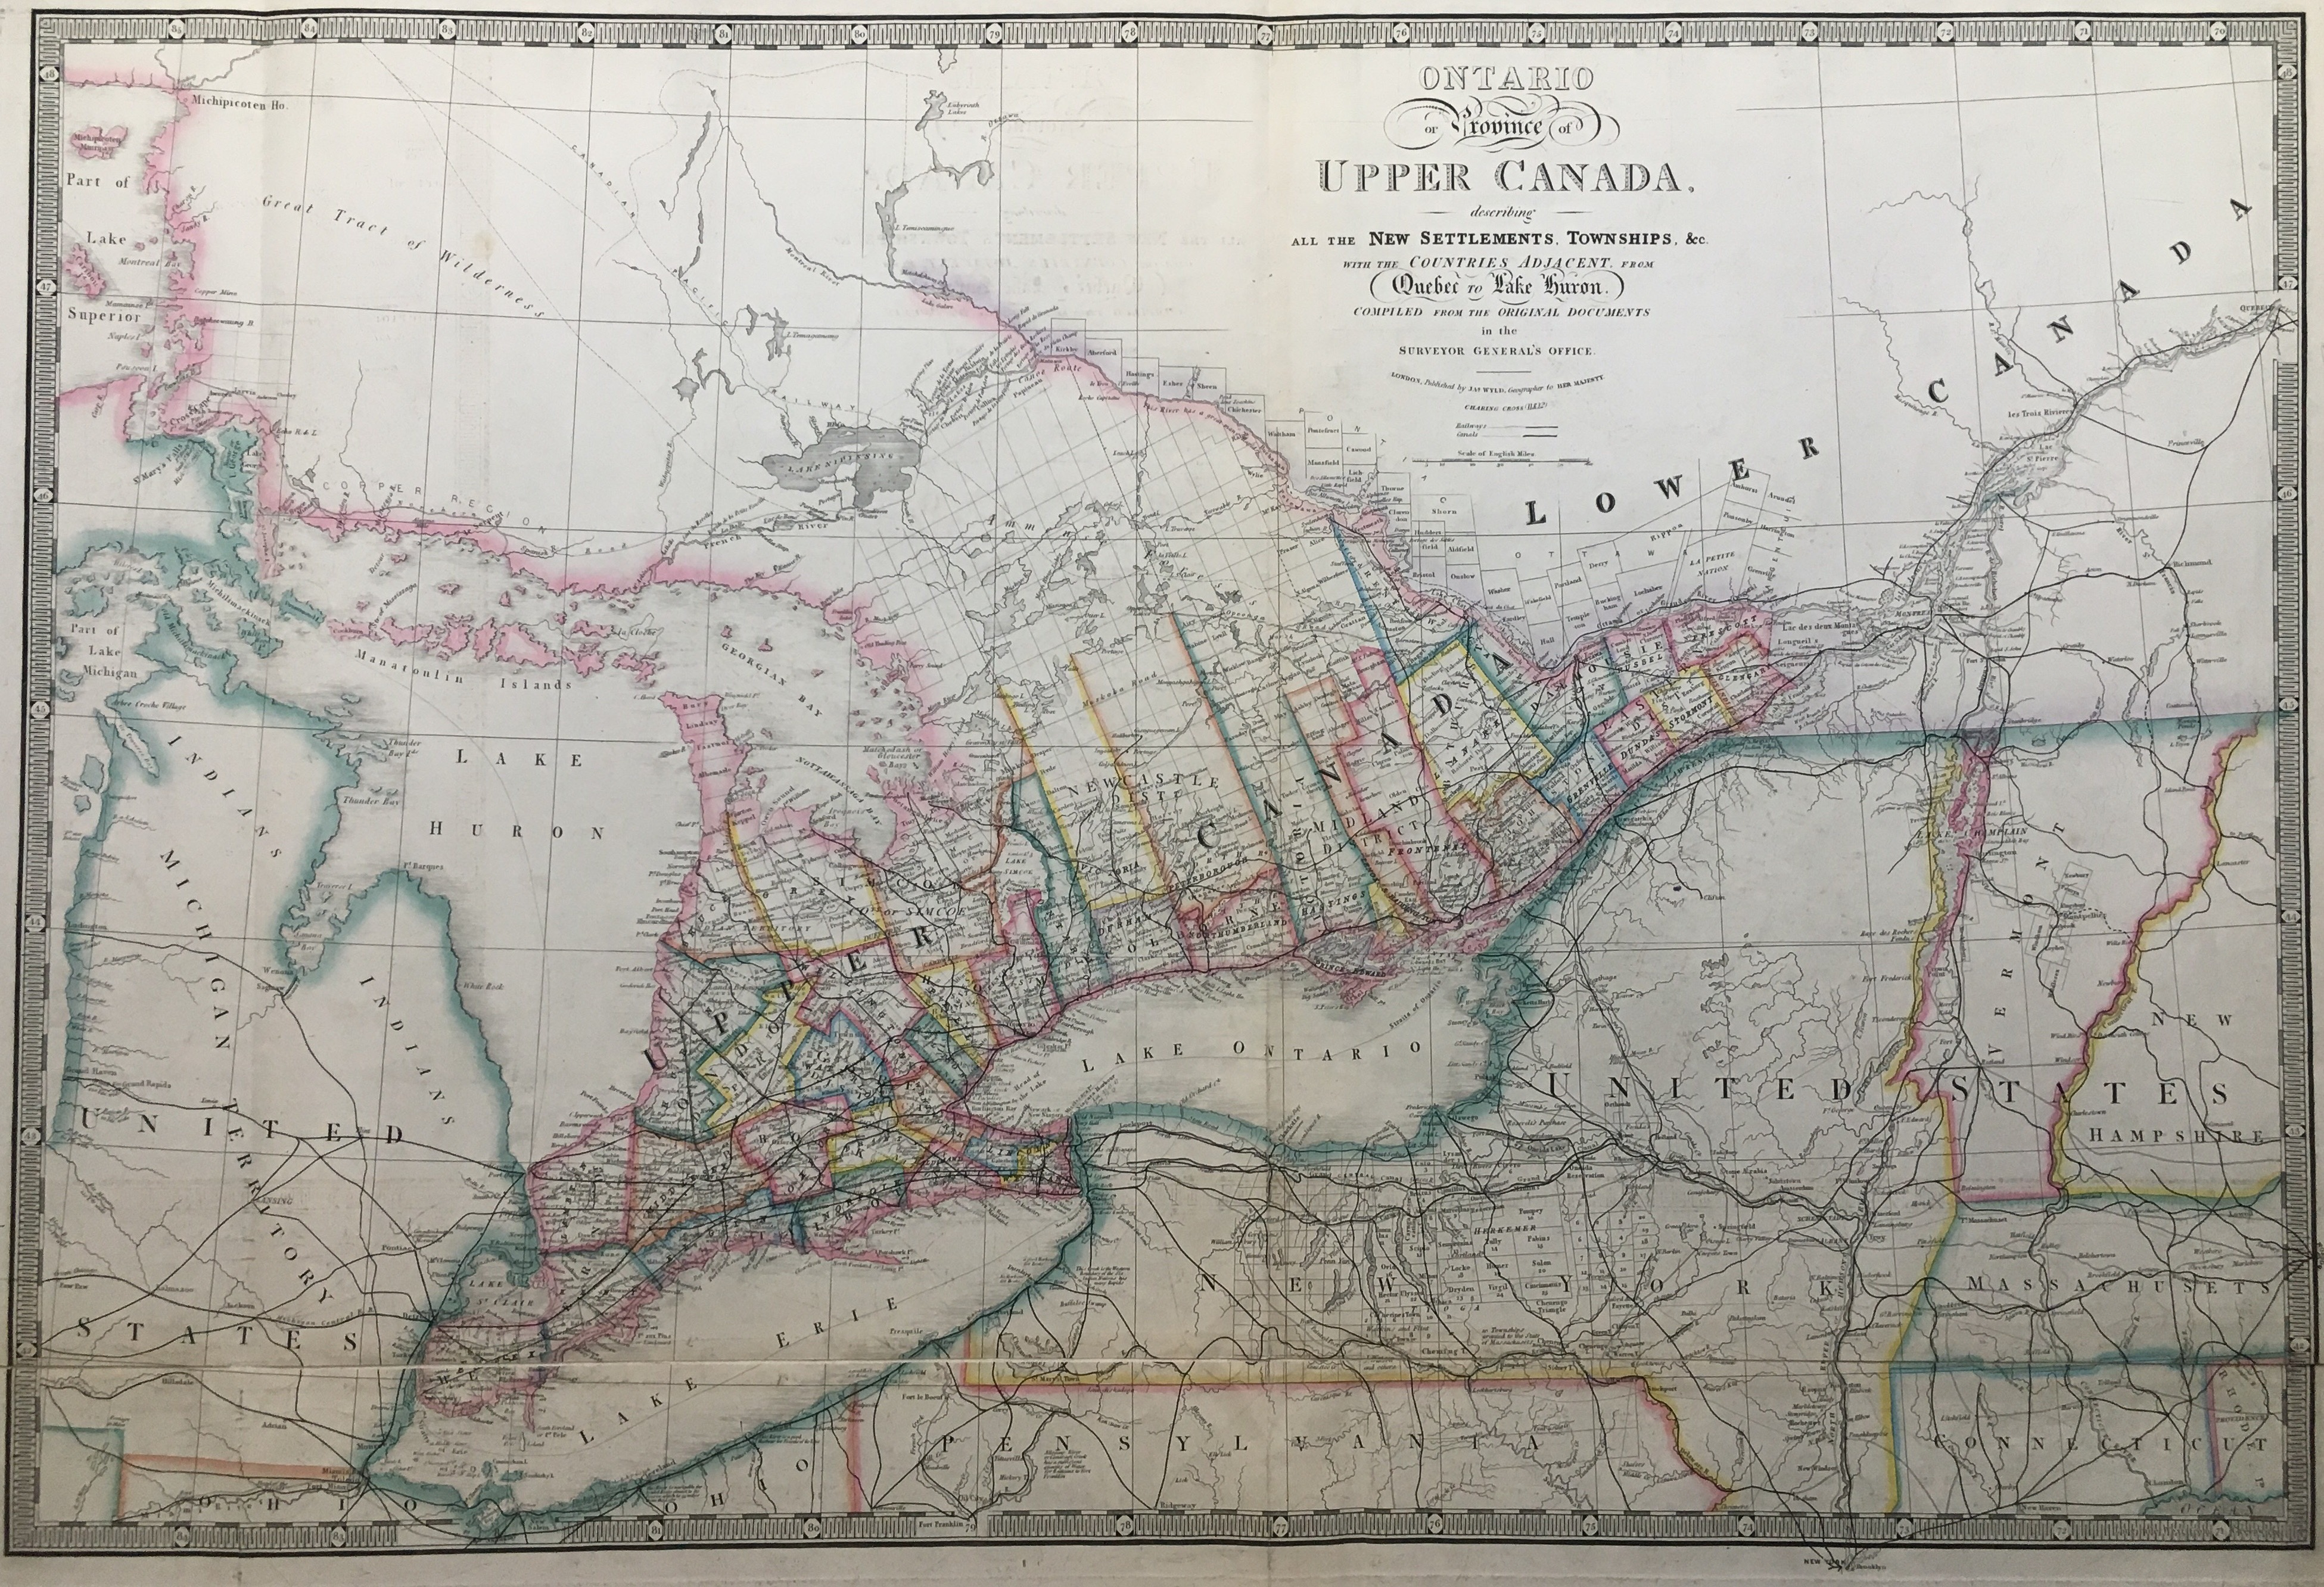 A Map of the Province of Upper Canada, describing all the New Settlements, Townships, &c. with...